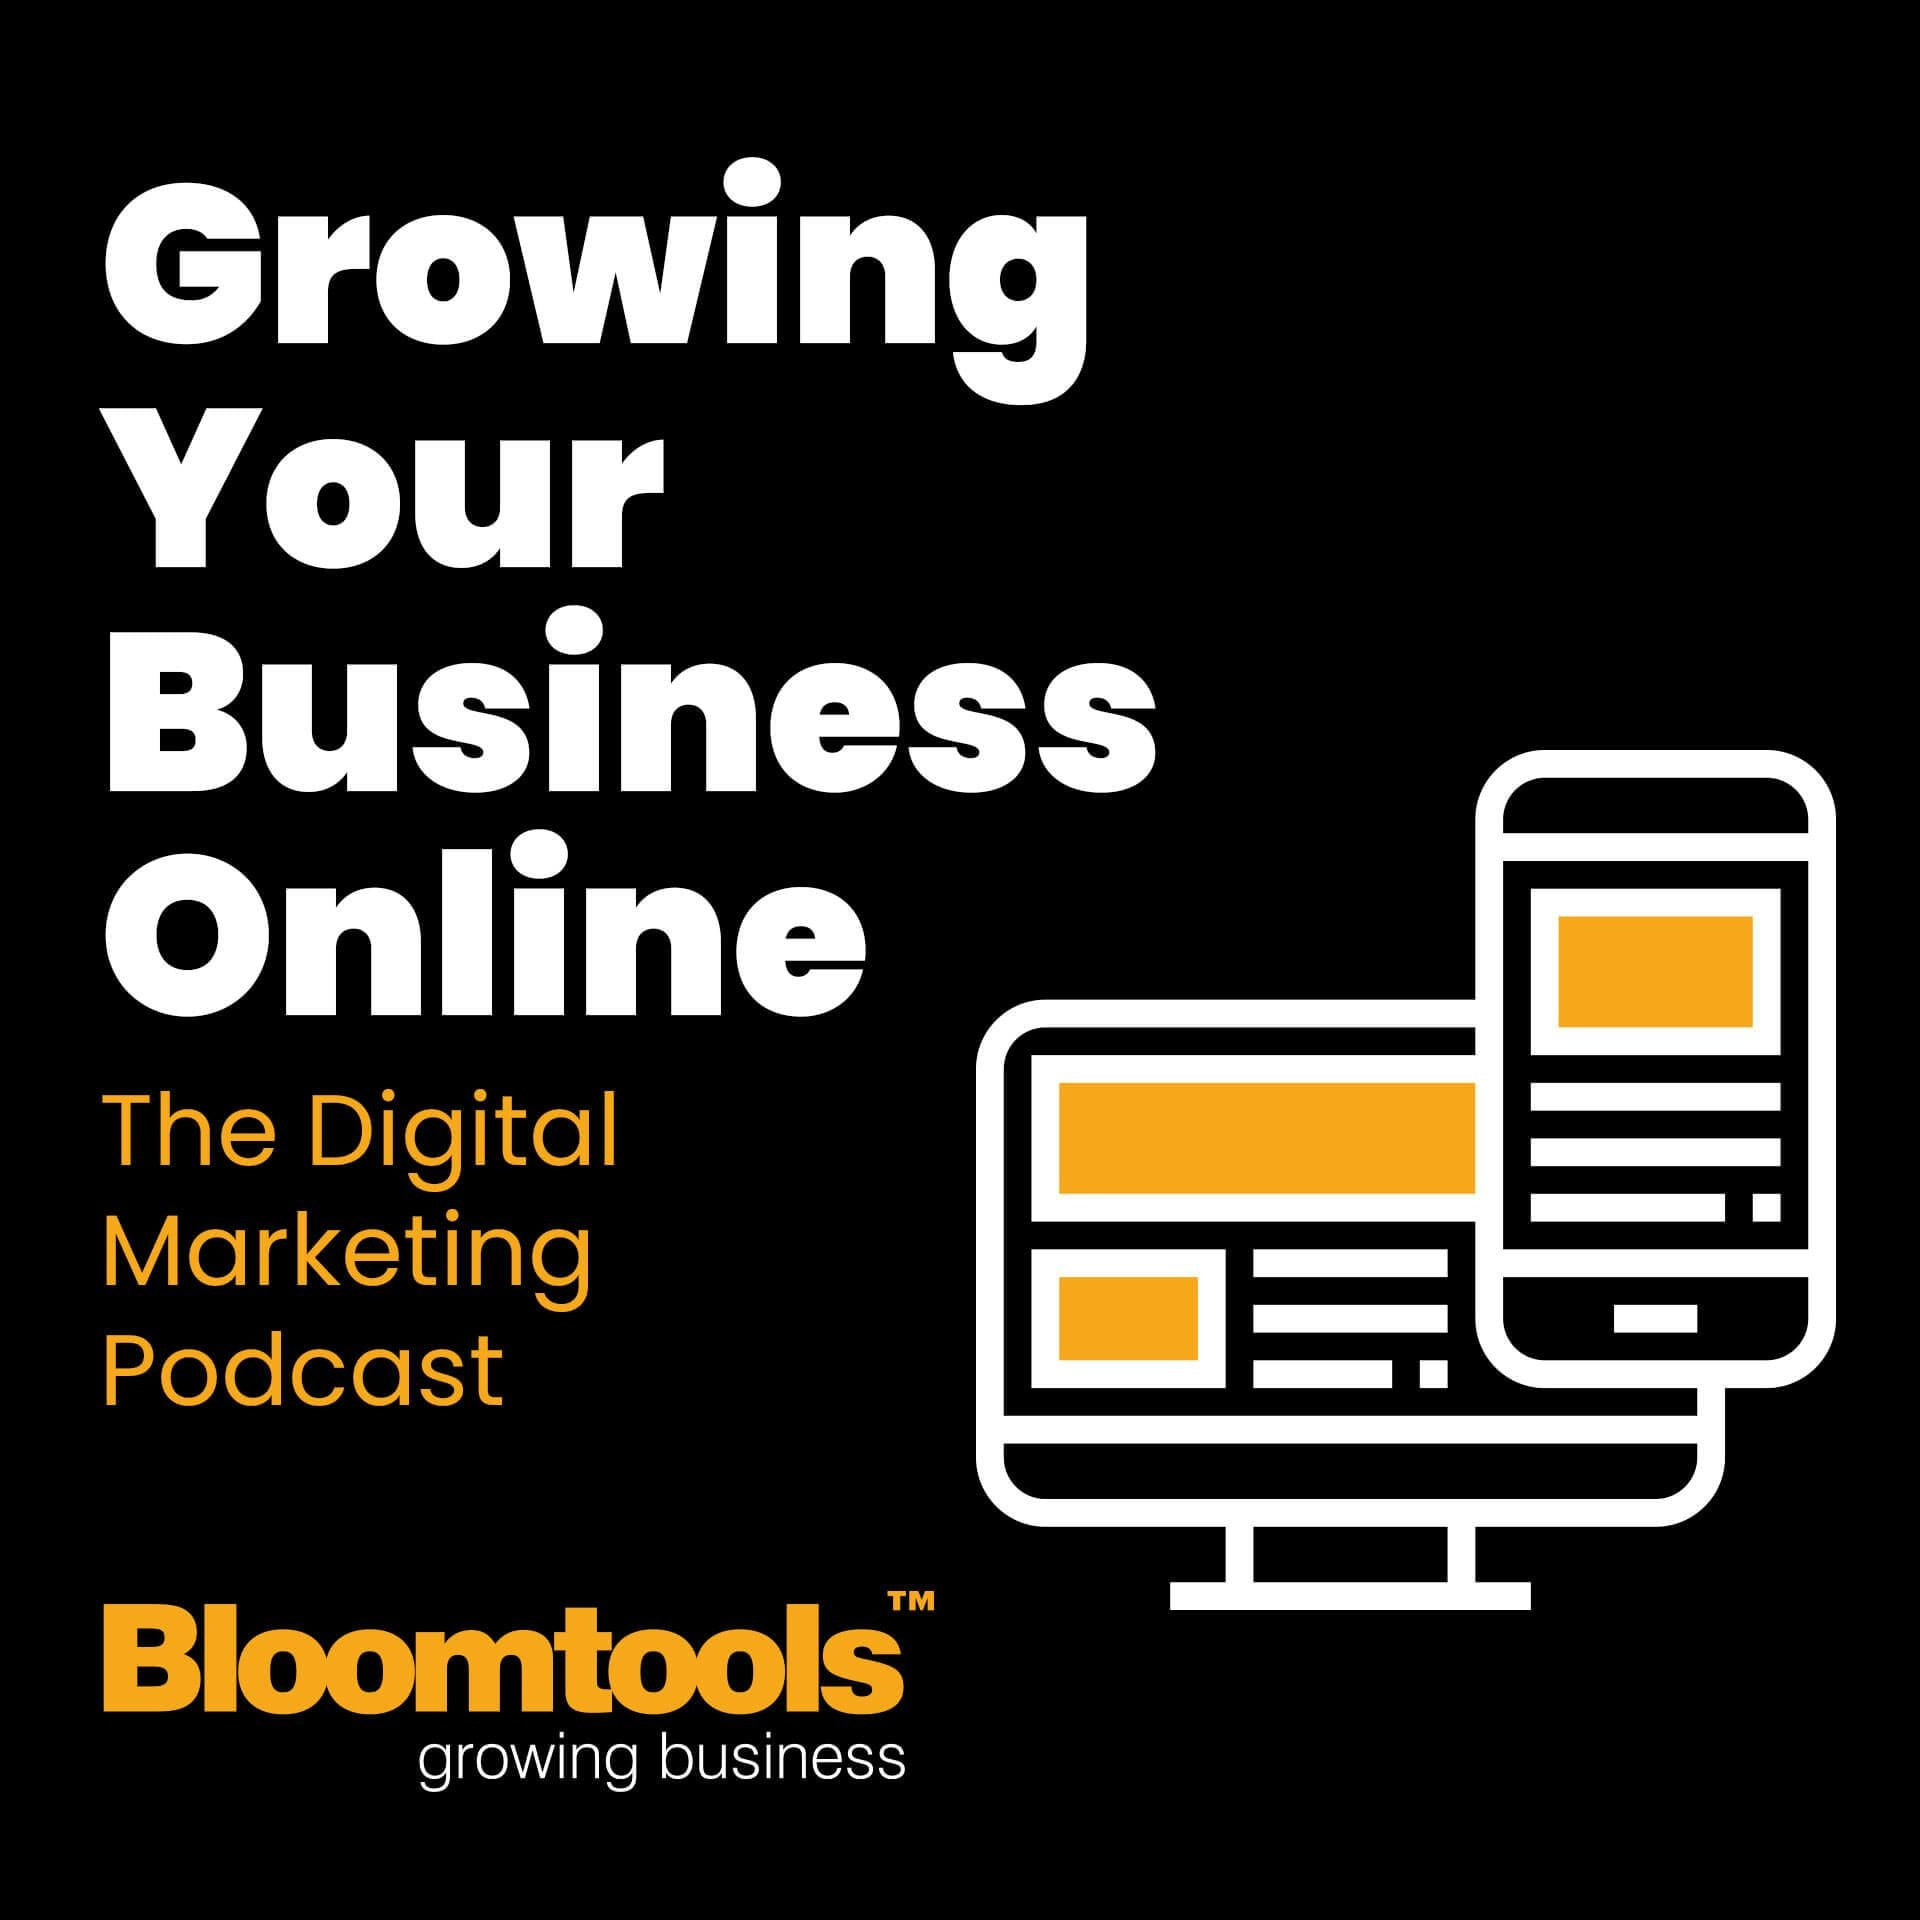 Growing Your Business Online - The Digital Marketing Podcast from Bloomtools